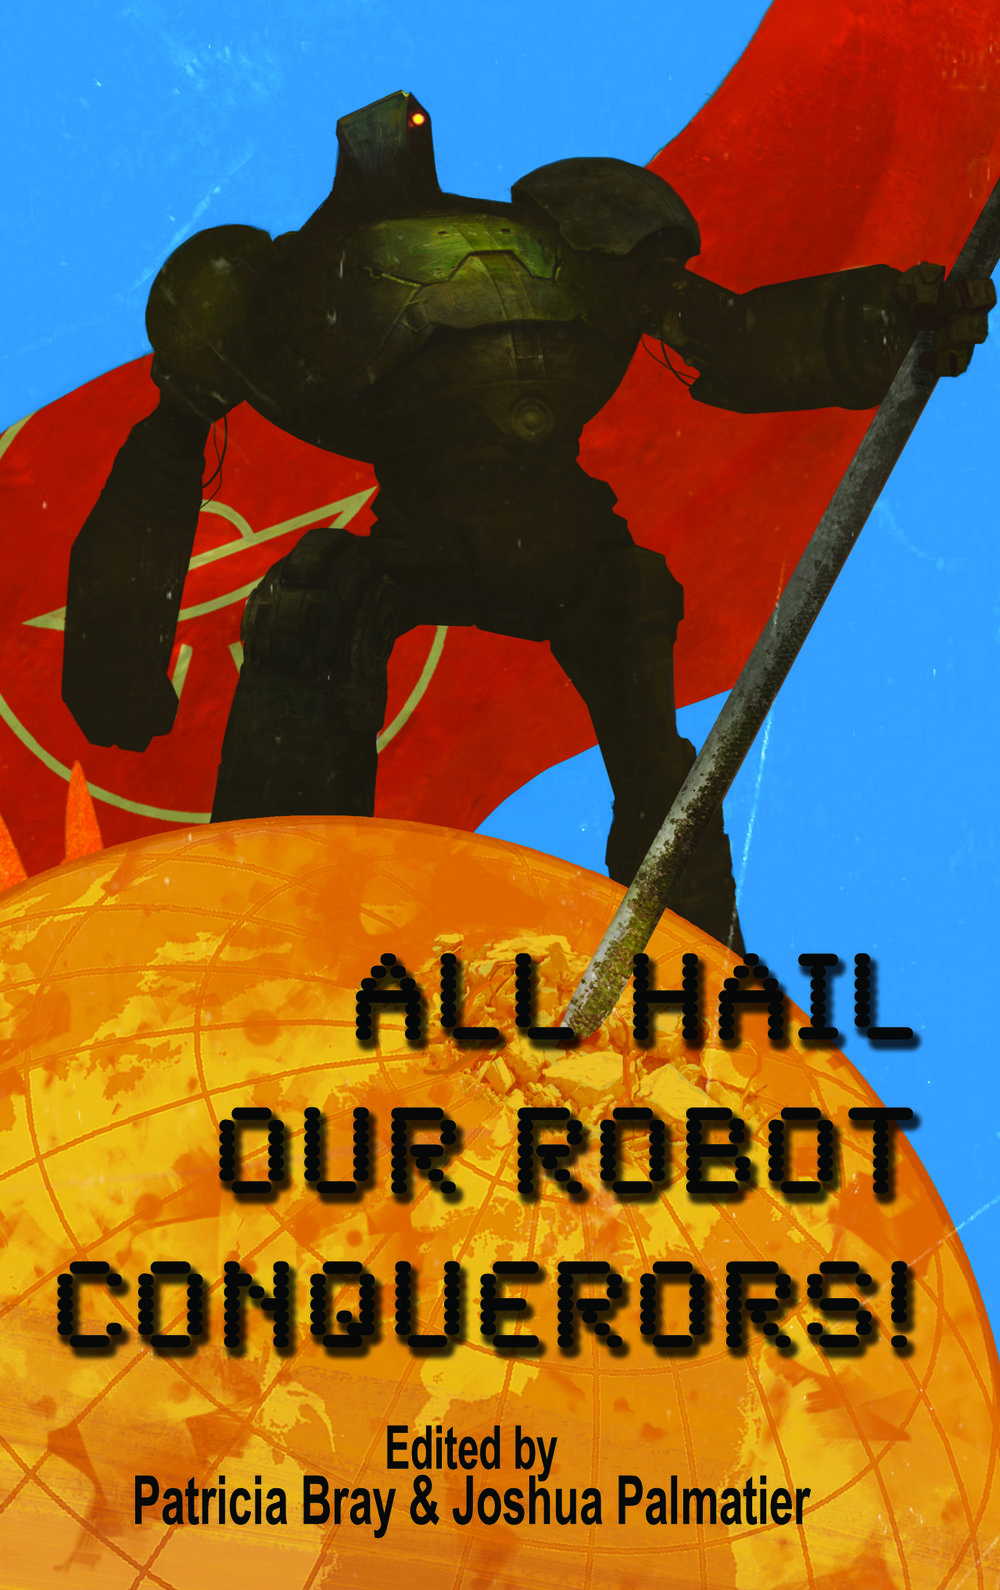 All Hail Our Robot Conquerors!, 2017